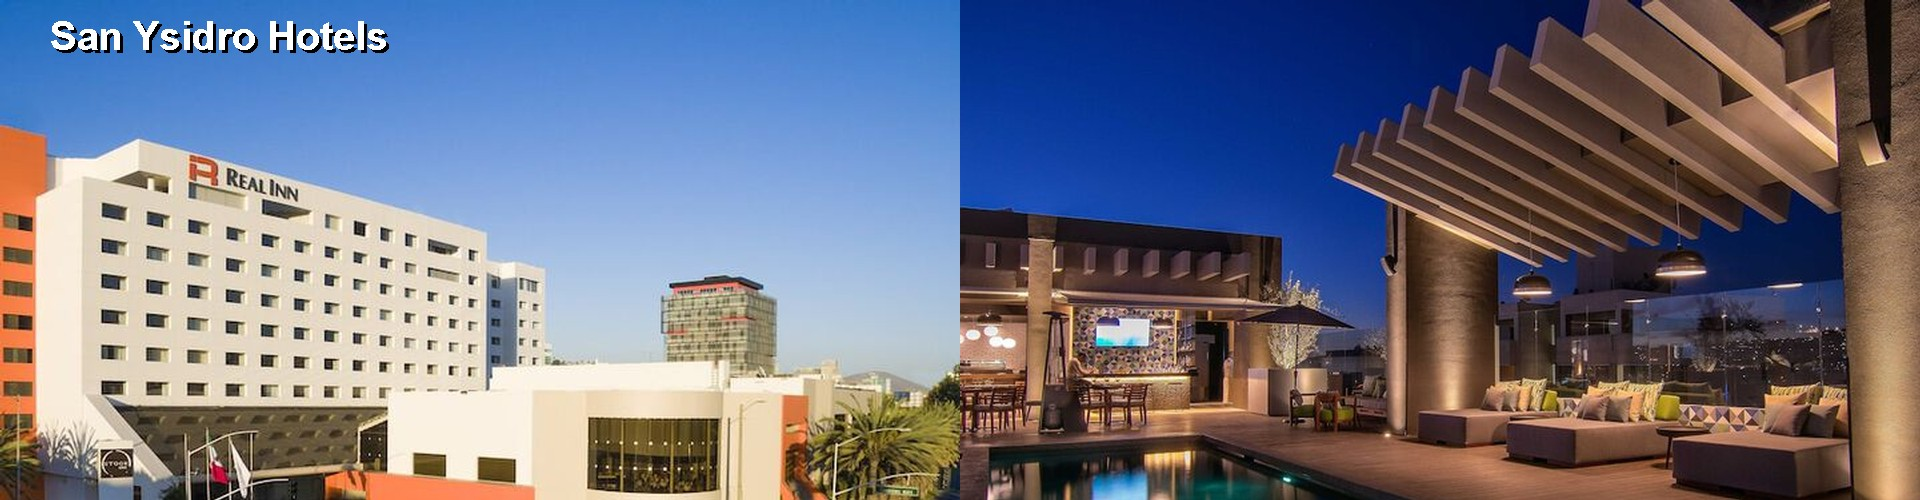 5 Best Hotels near San Ysidro